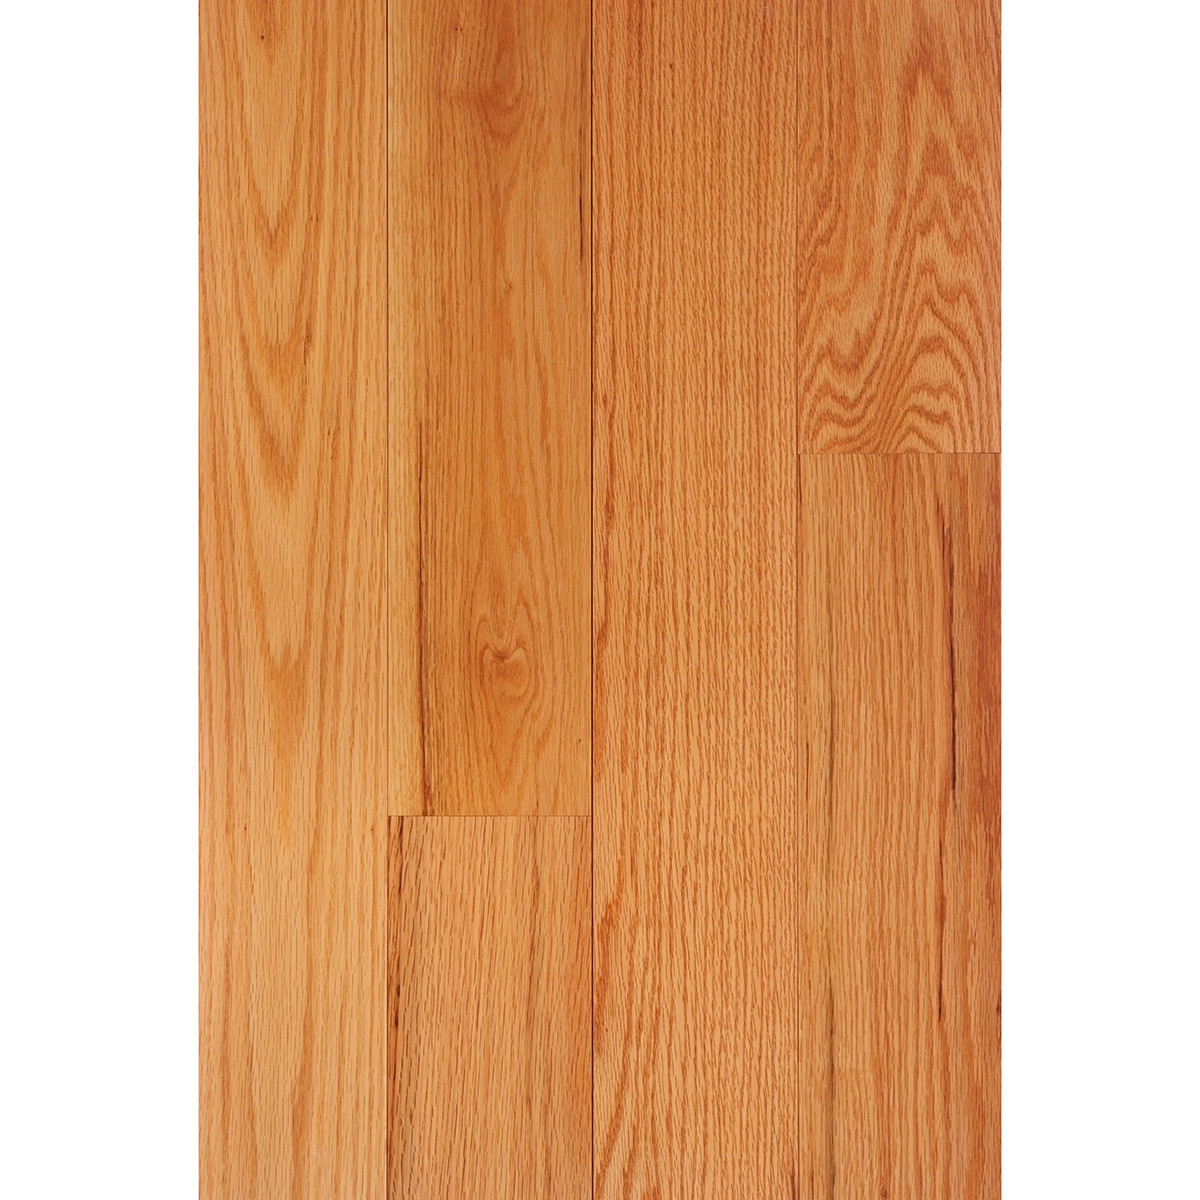 3 4 inch hardwood flooring of red oak 3 4 x 5 select grade flooring throughout prefinished clear semi gloss 3 4